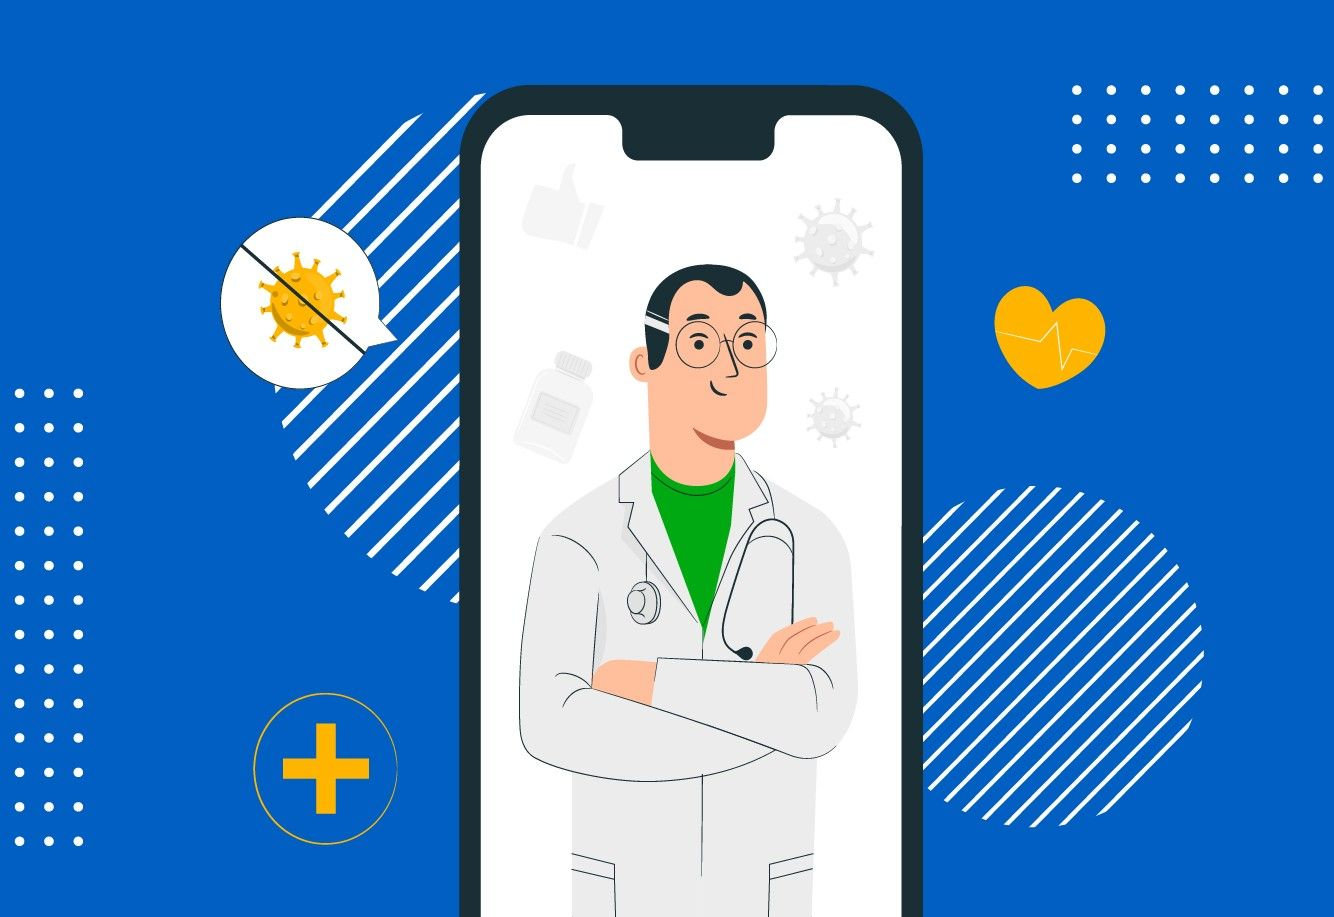 Designing Solutions for Healthcare: How to Make Users of Your App Satisfied?